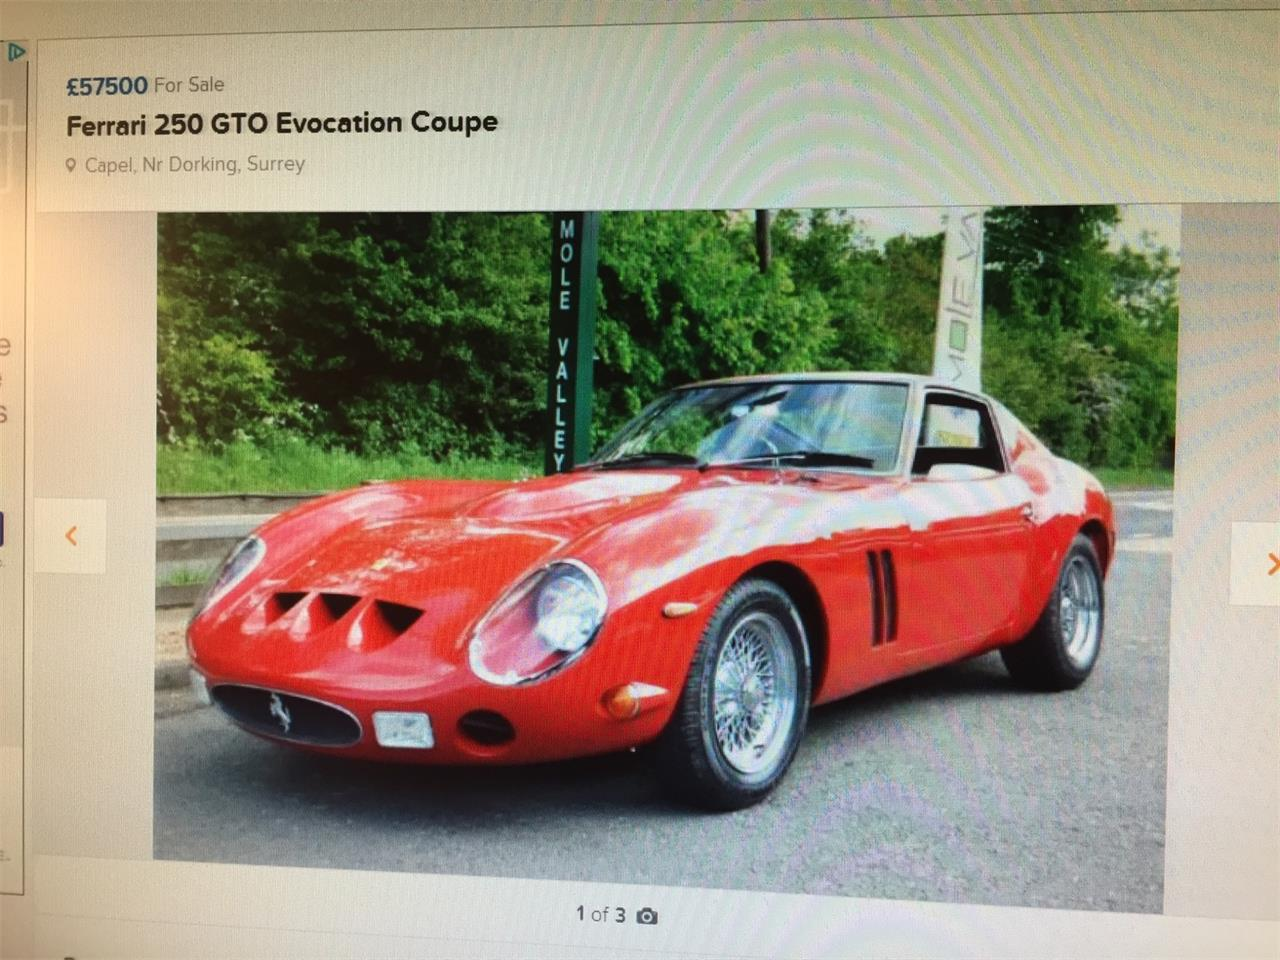 Large Picture of '74 250 GTO Replica Velorossa  - L6GW